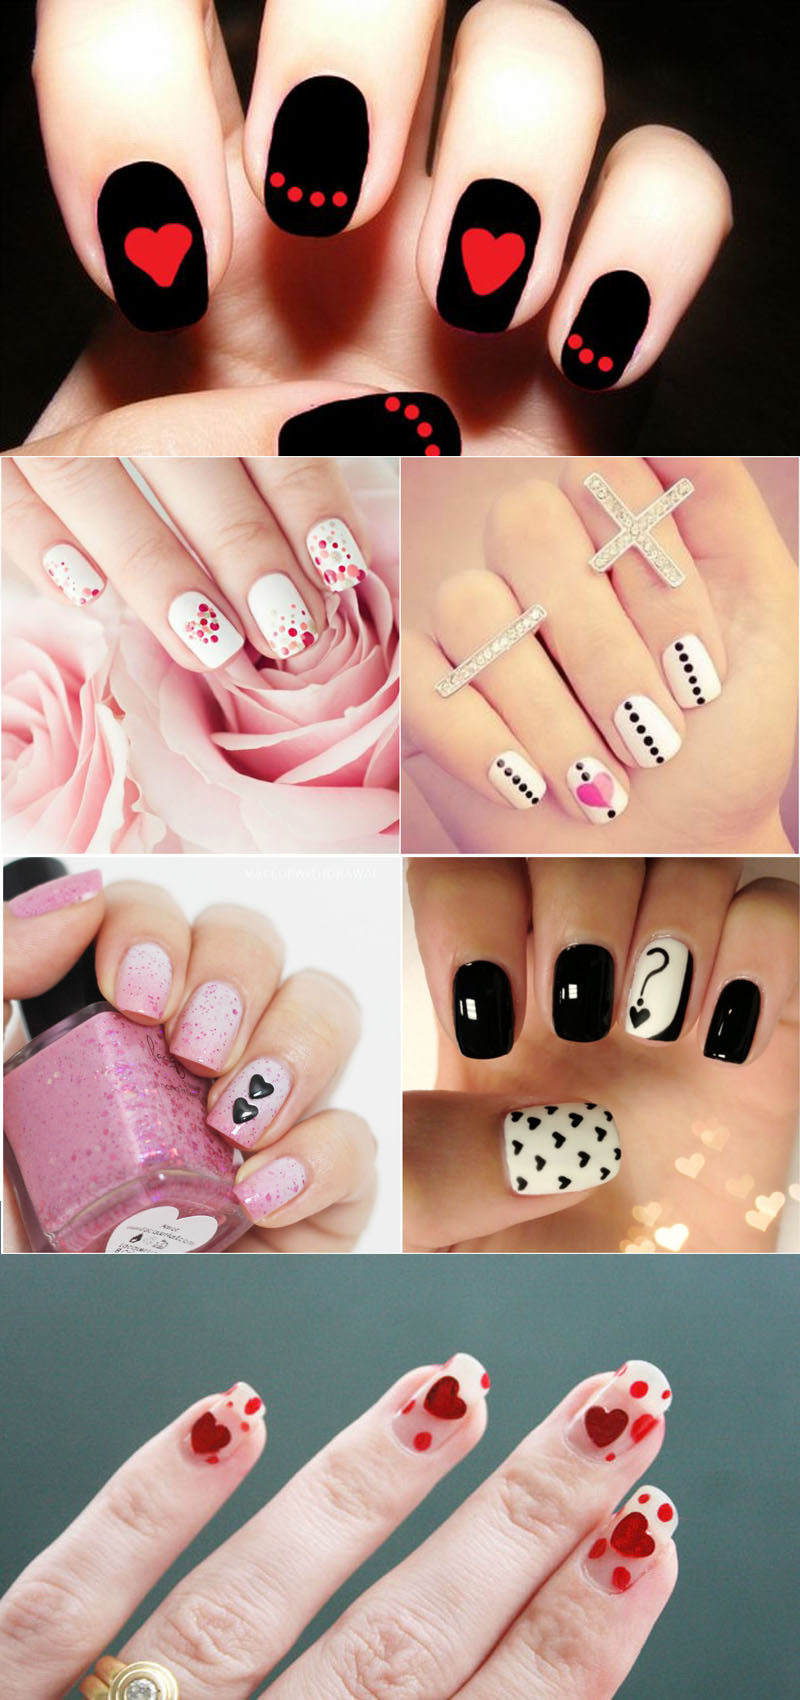 hearts-and-dots-nail-art